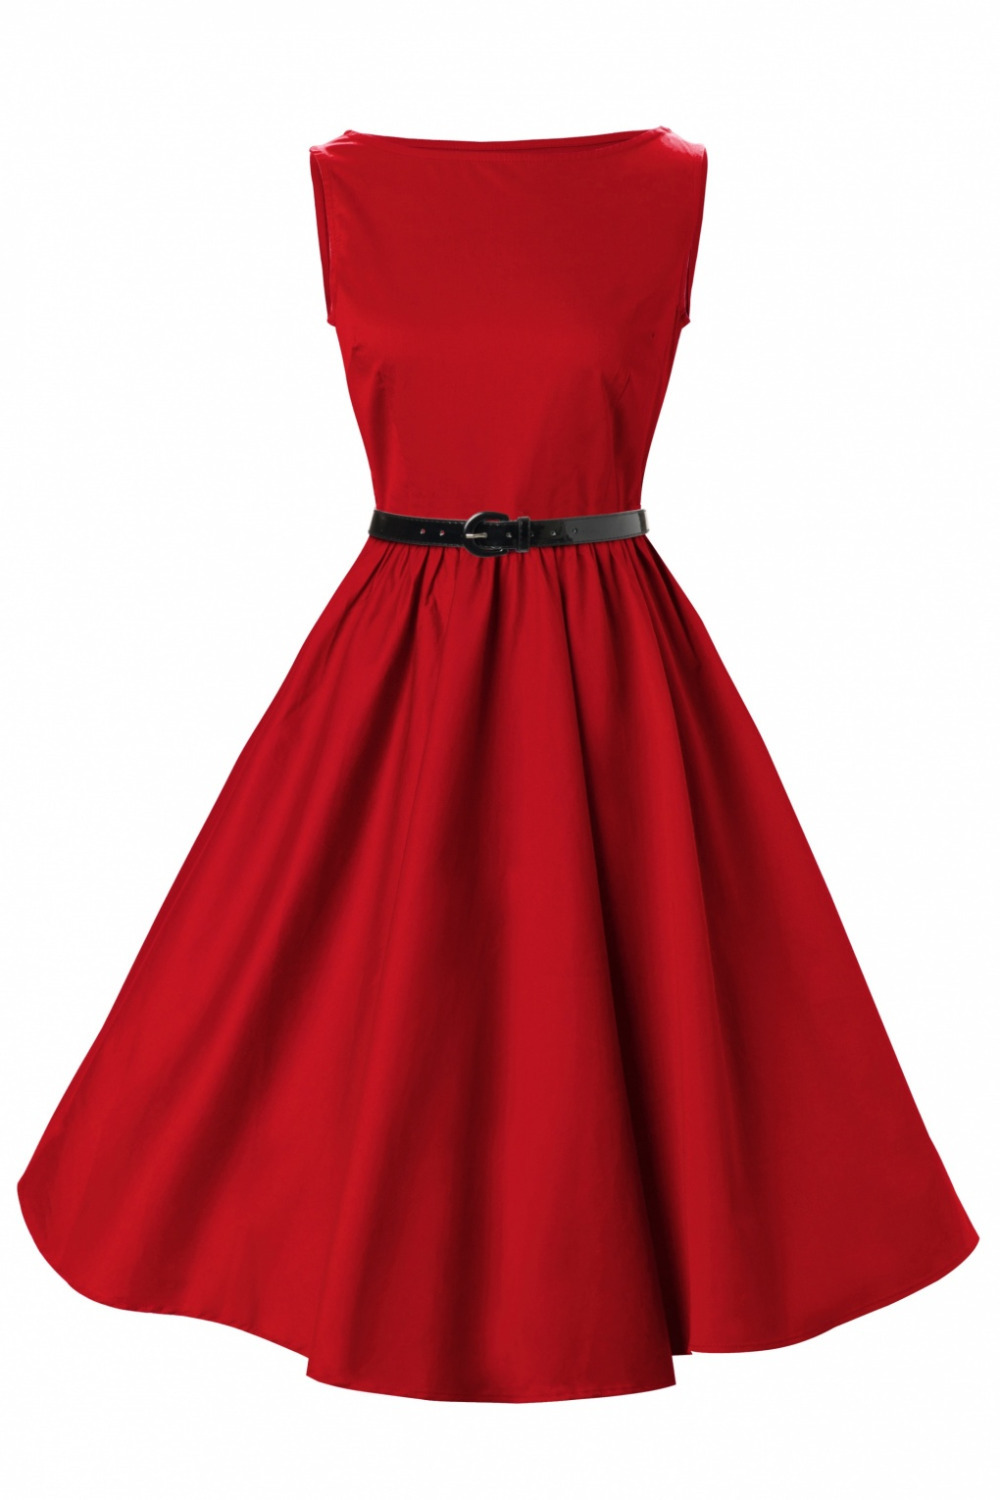 Dropshipping Women S Special Occasion Clothing Red Dresses Online Uk Designer Clubwear Y Vintage Inspired In From Accessories